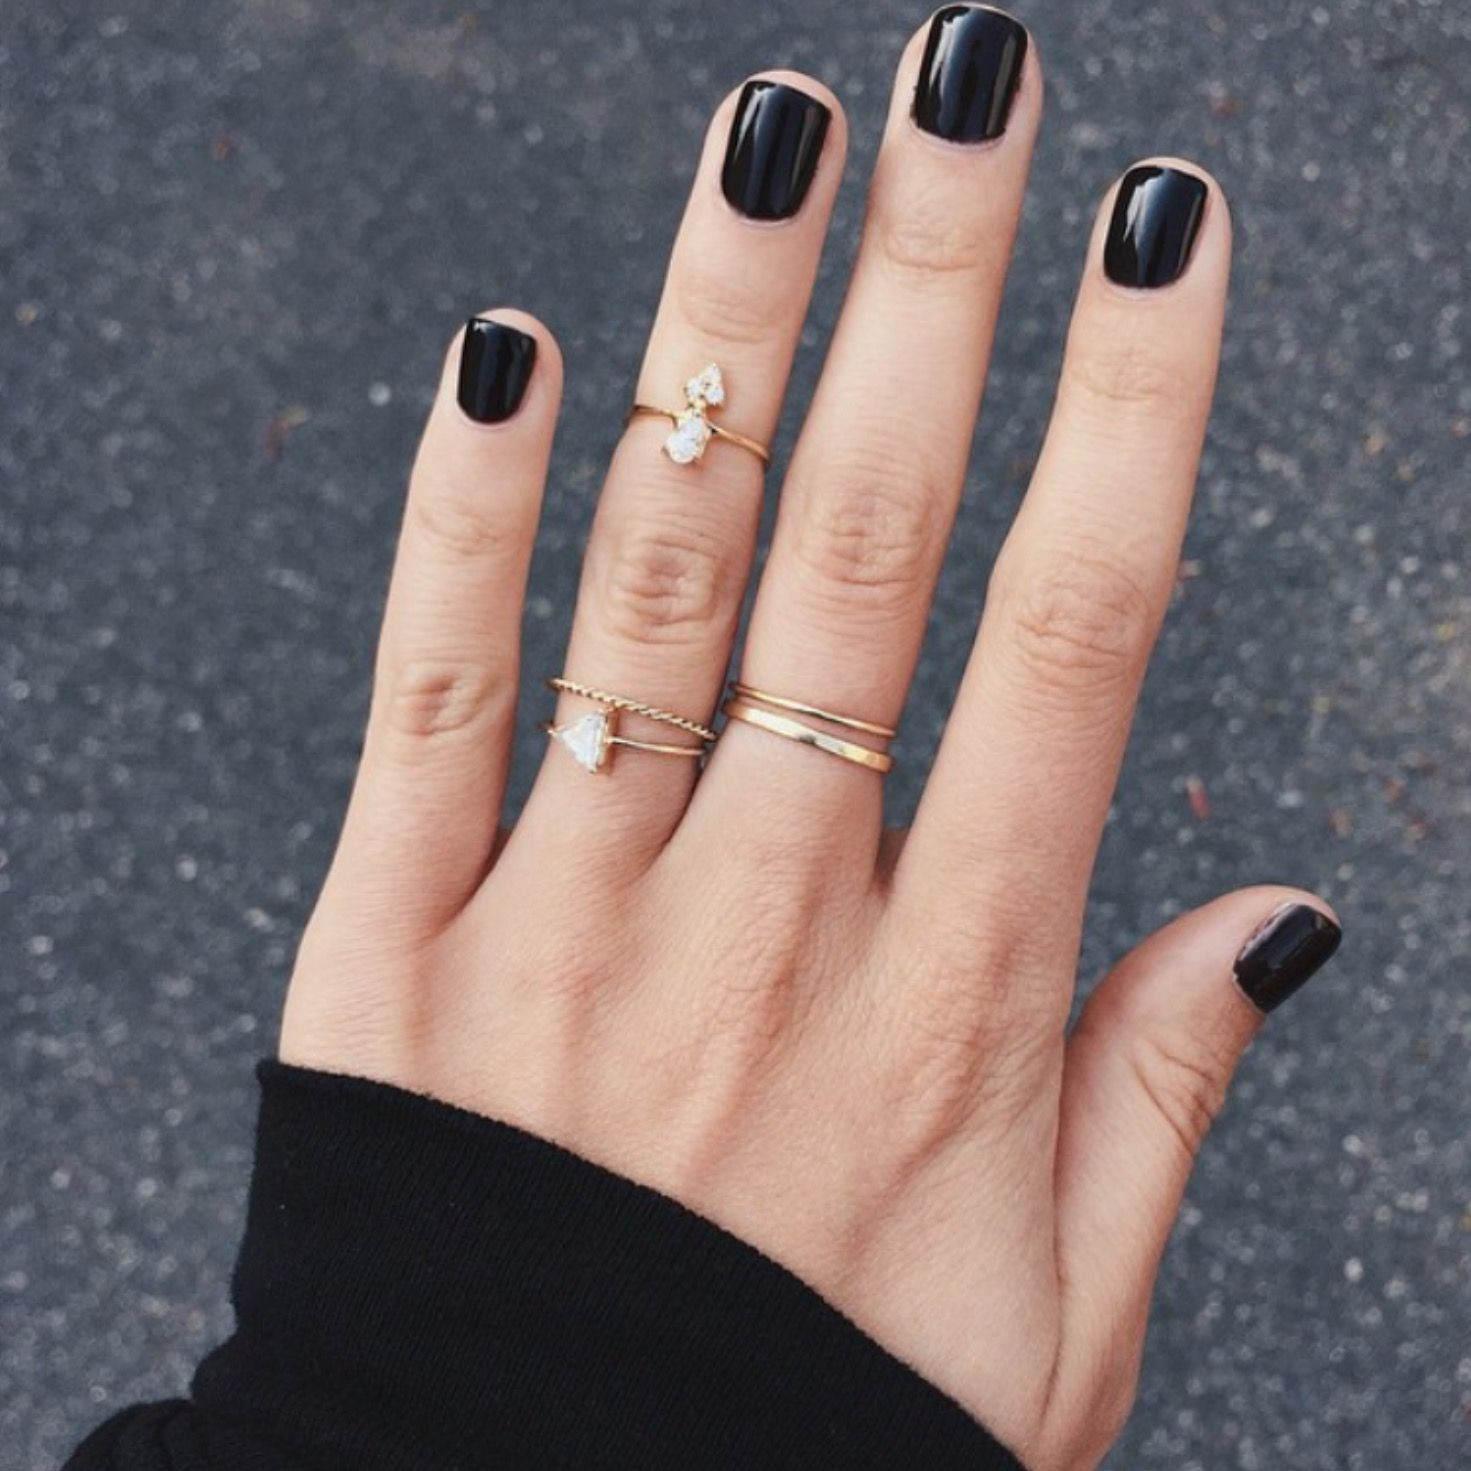 Black Short Nails Dark Nails Black Nails Hair And Nails